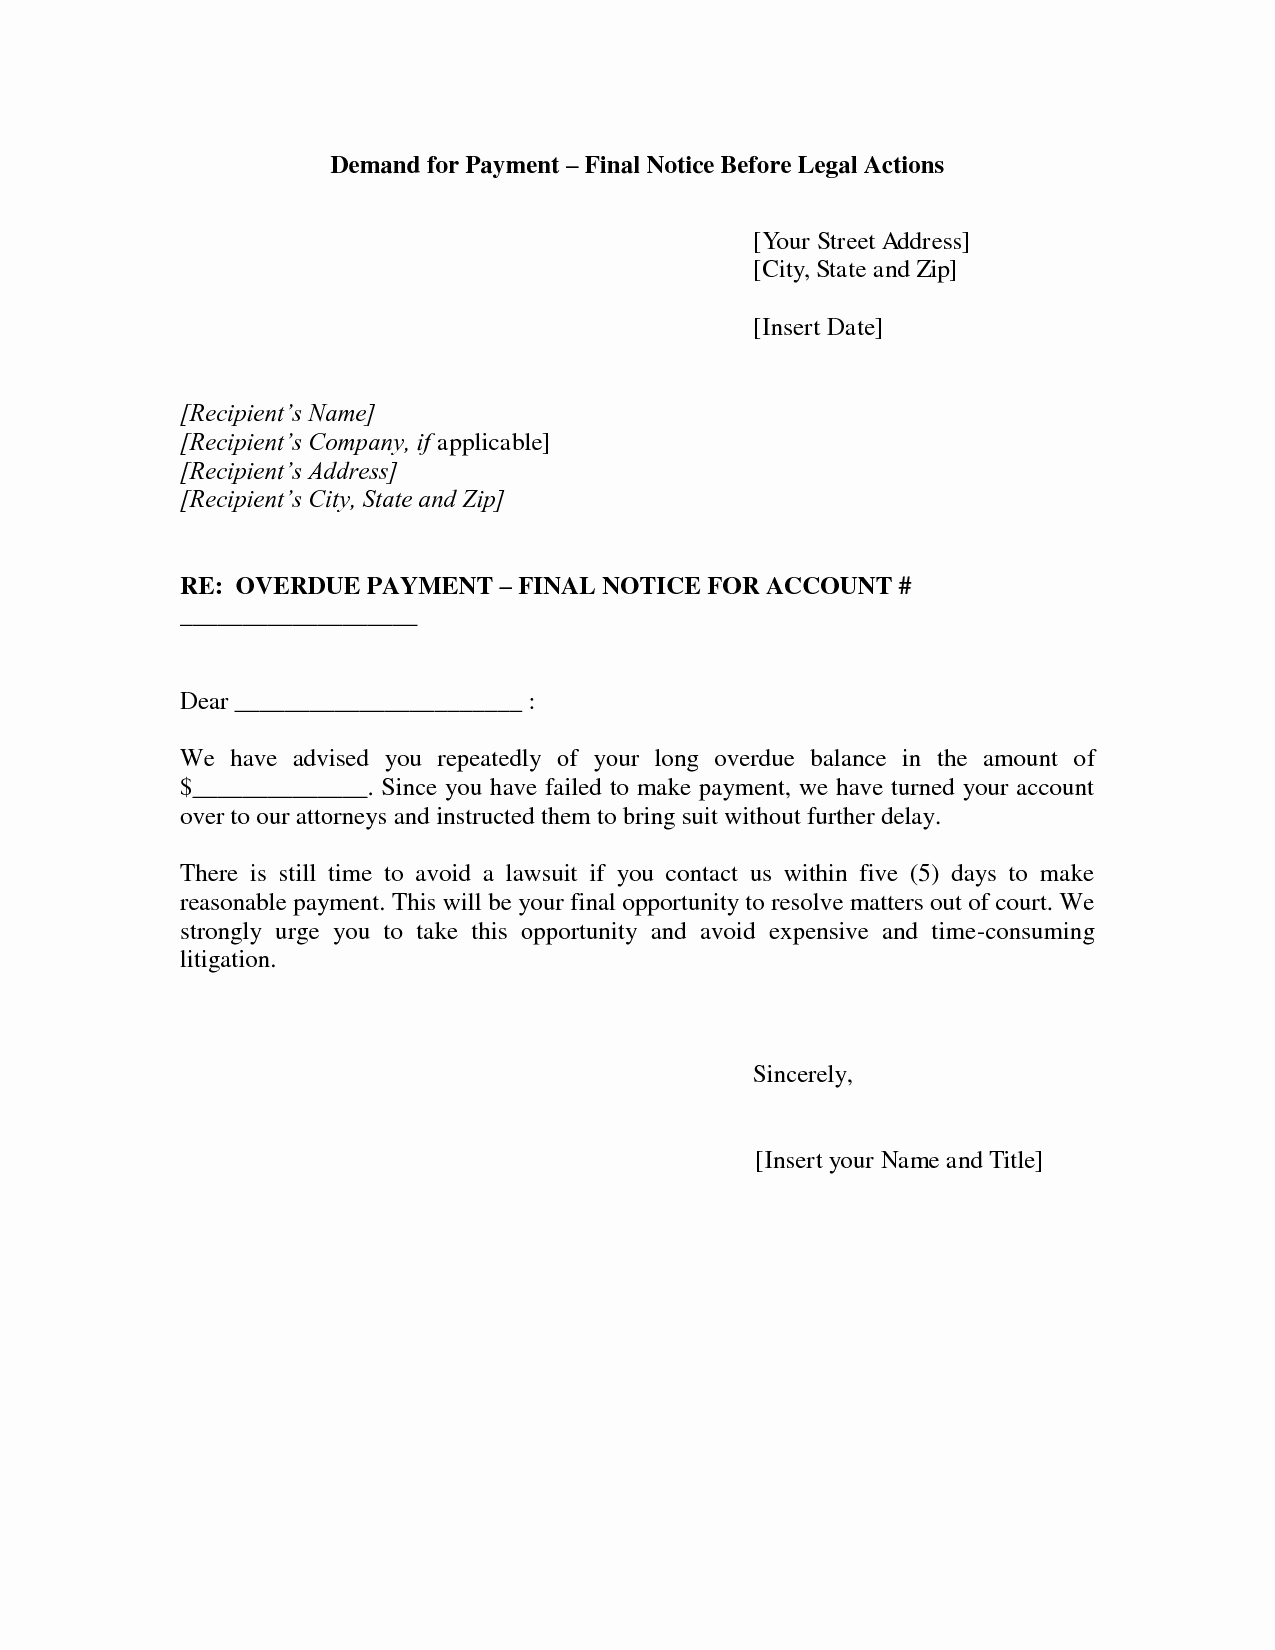 Collection Demand Letter Template Beautiful Best S Of Final Notice Letter Final Notice before